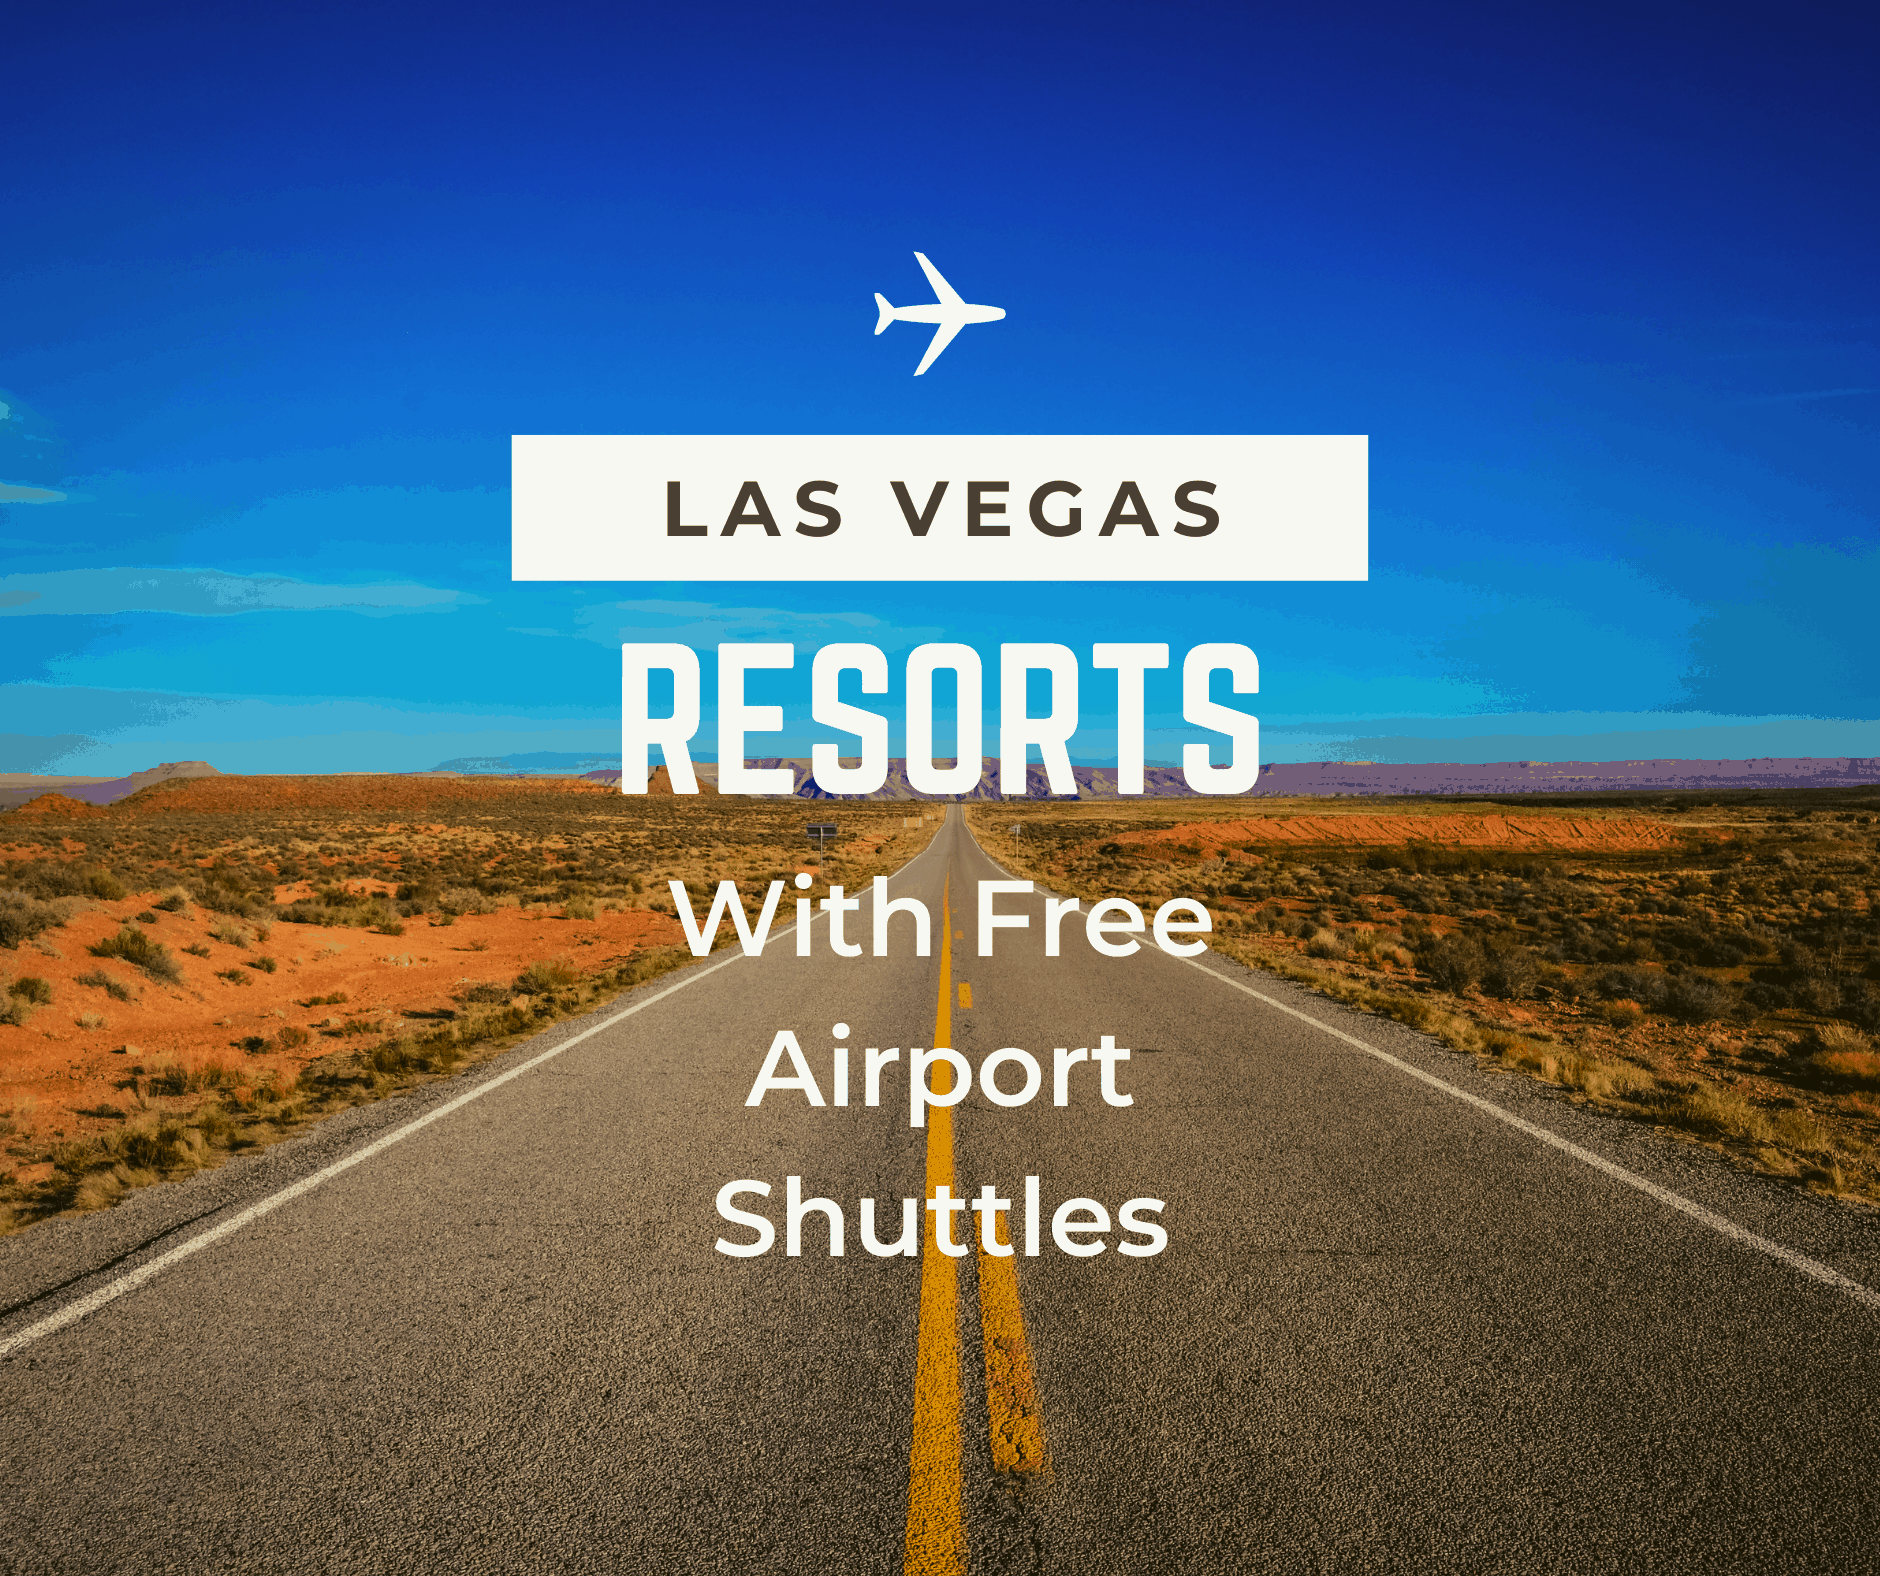 Las Vegas Hotels with Free Airport Shuttles